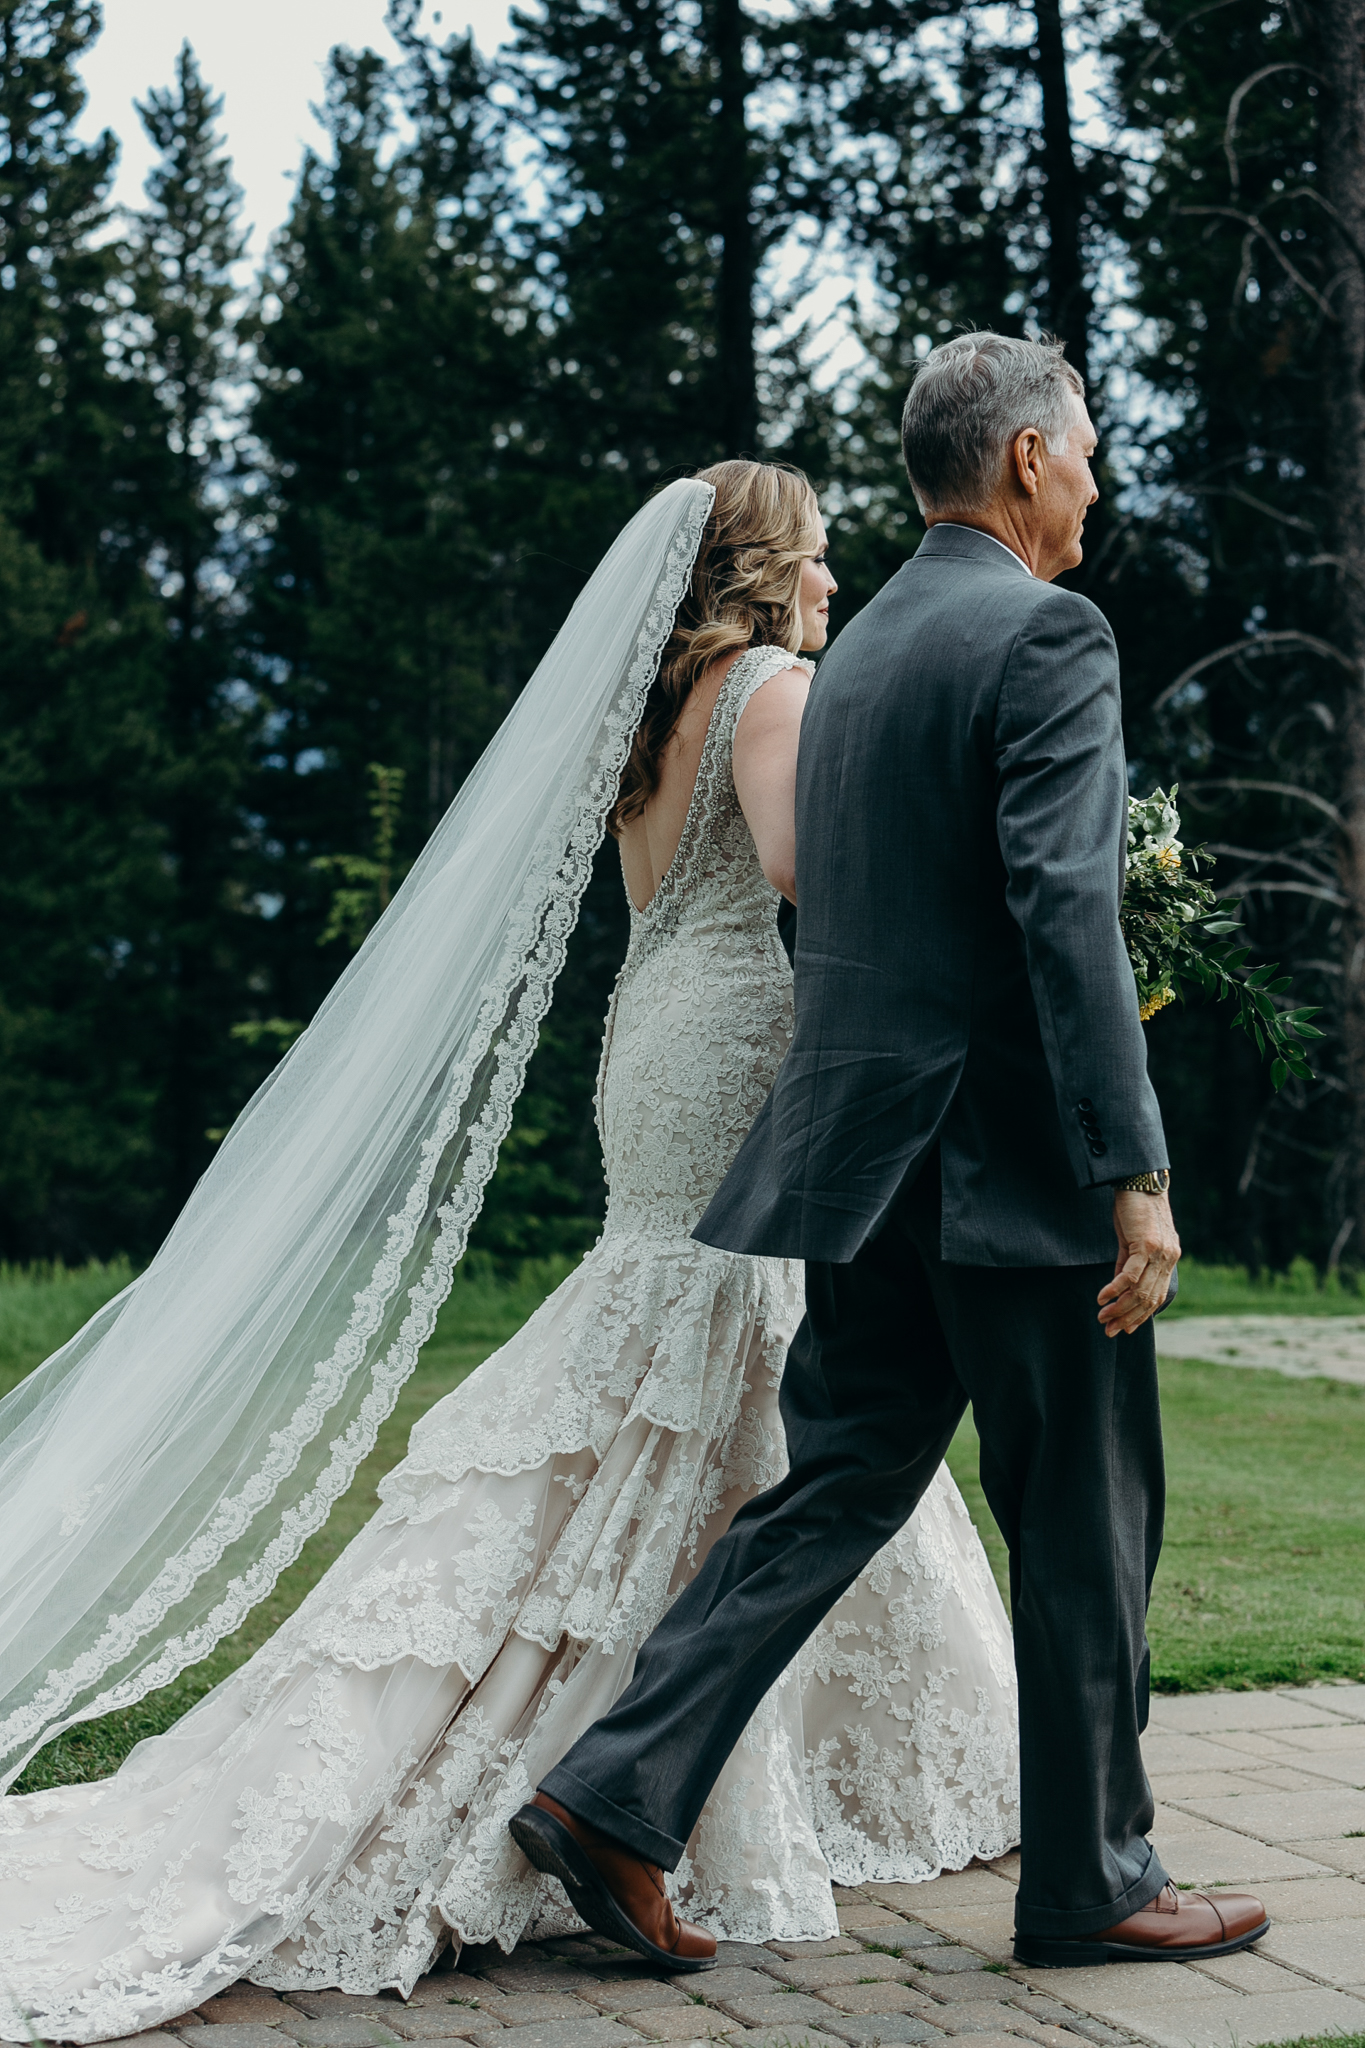 Father walks bride down aisle at Silvertip Resort Canmore AB wedding